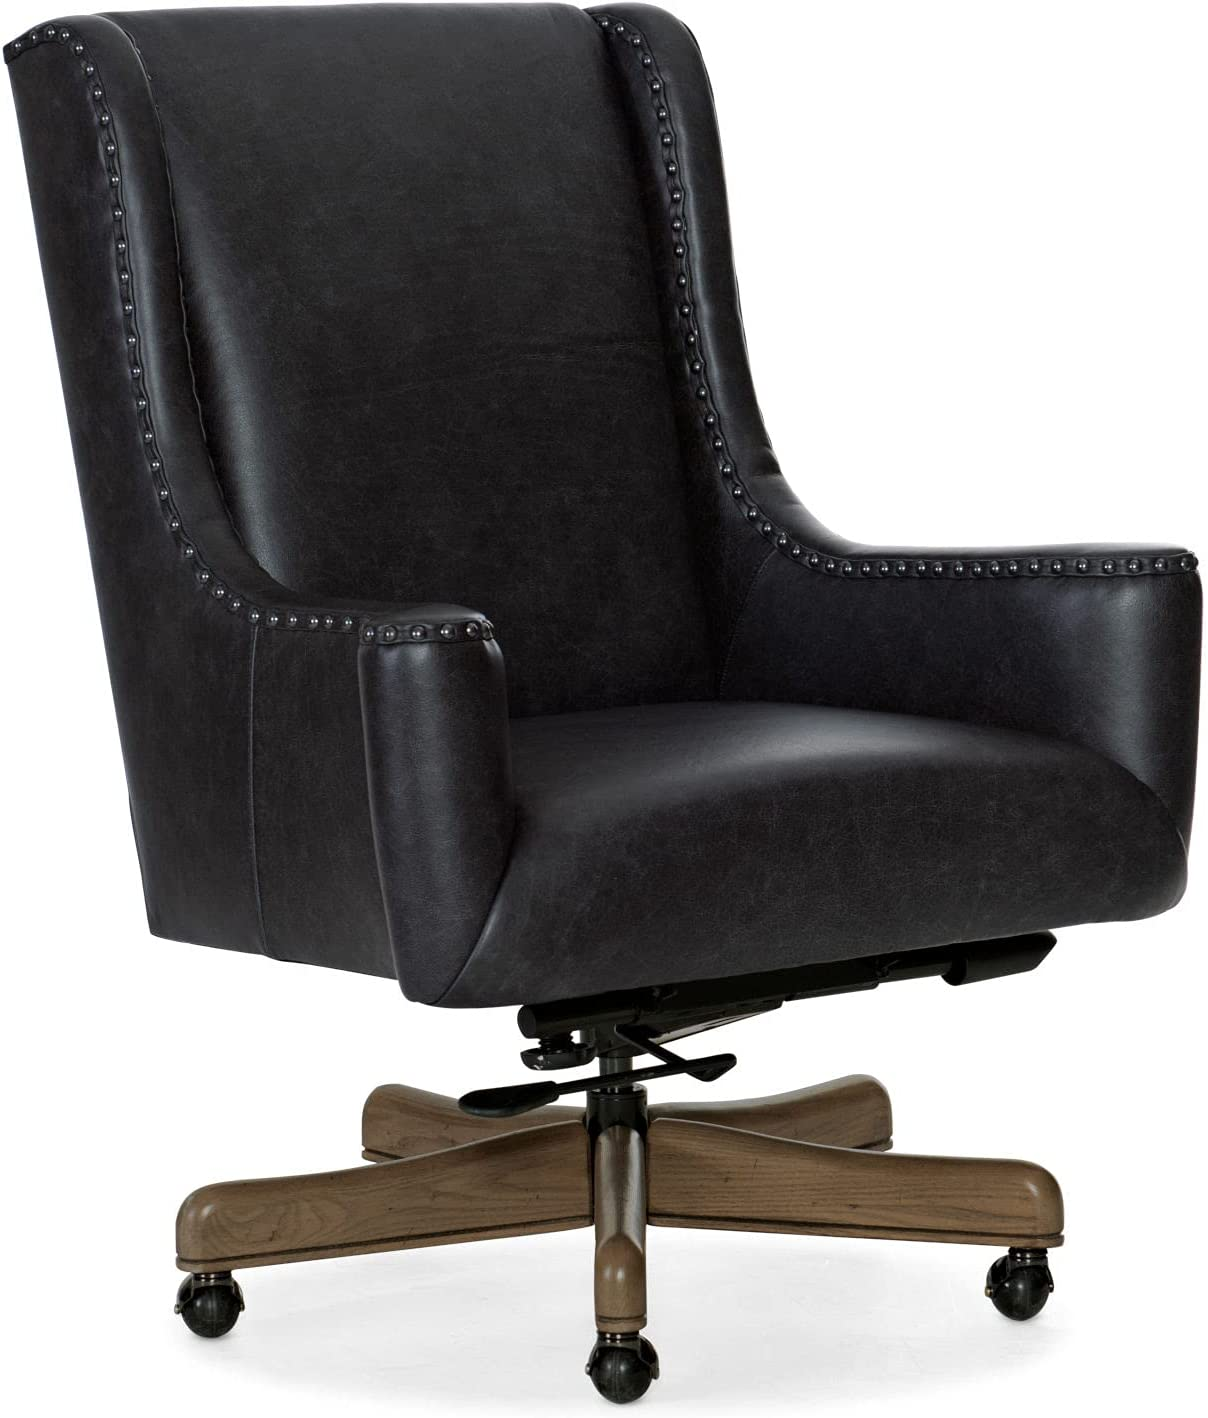 Hooker Furniture Lily 2021 spring and summer new Executive Tilt Chair Gorgeous Swivel